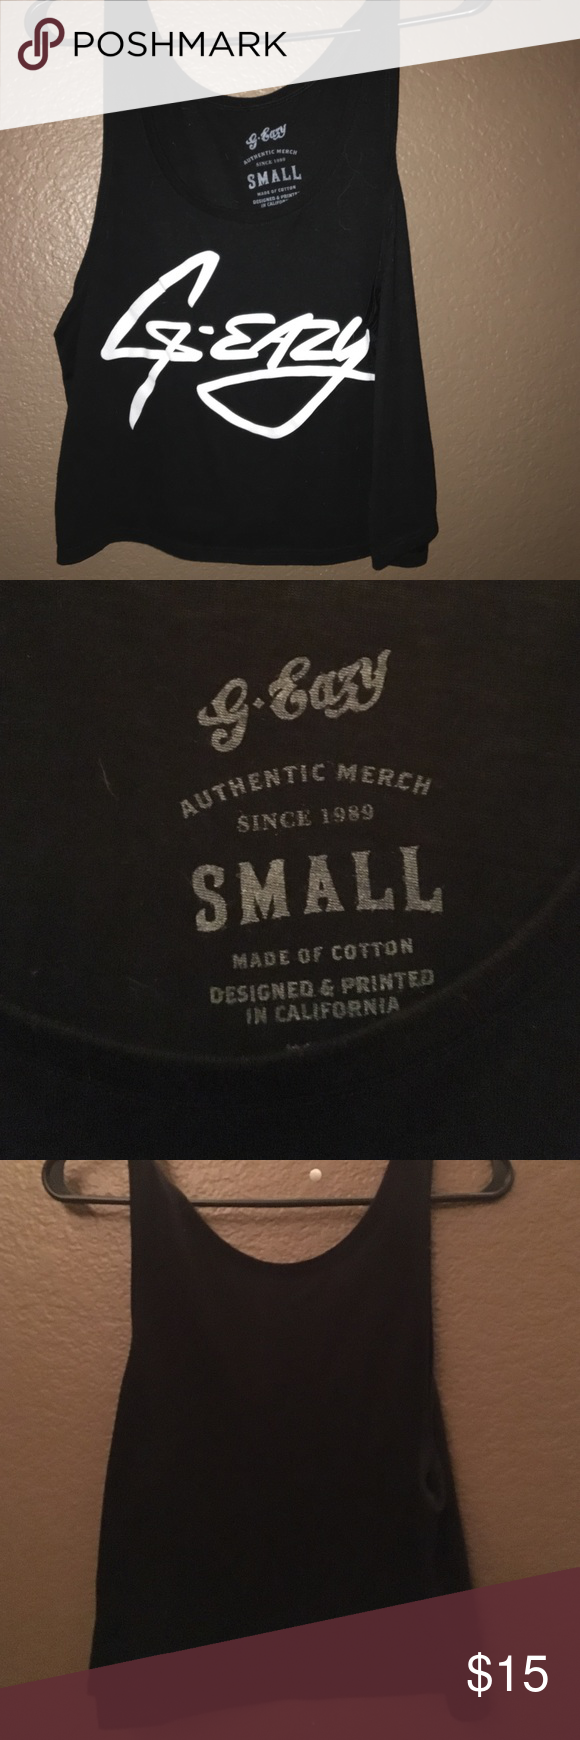 107337969347 G-Eazy Black Crop Top Authentic merch from g-eazy store. Never worn. 100%  cotton. G-Eazy Merch Tops Crop Tops